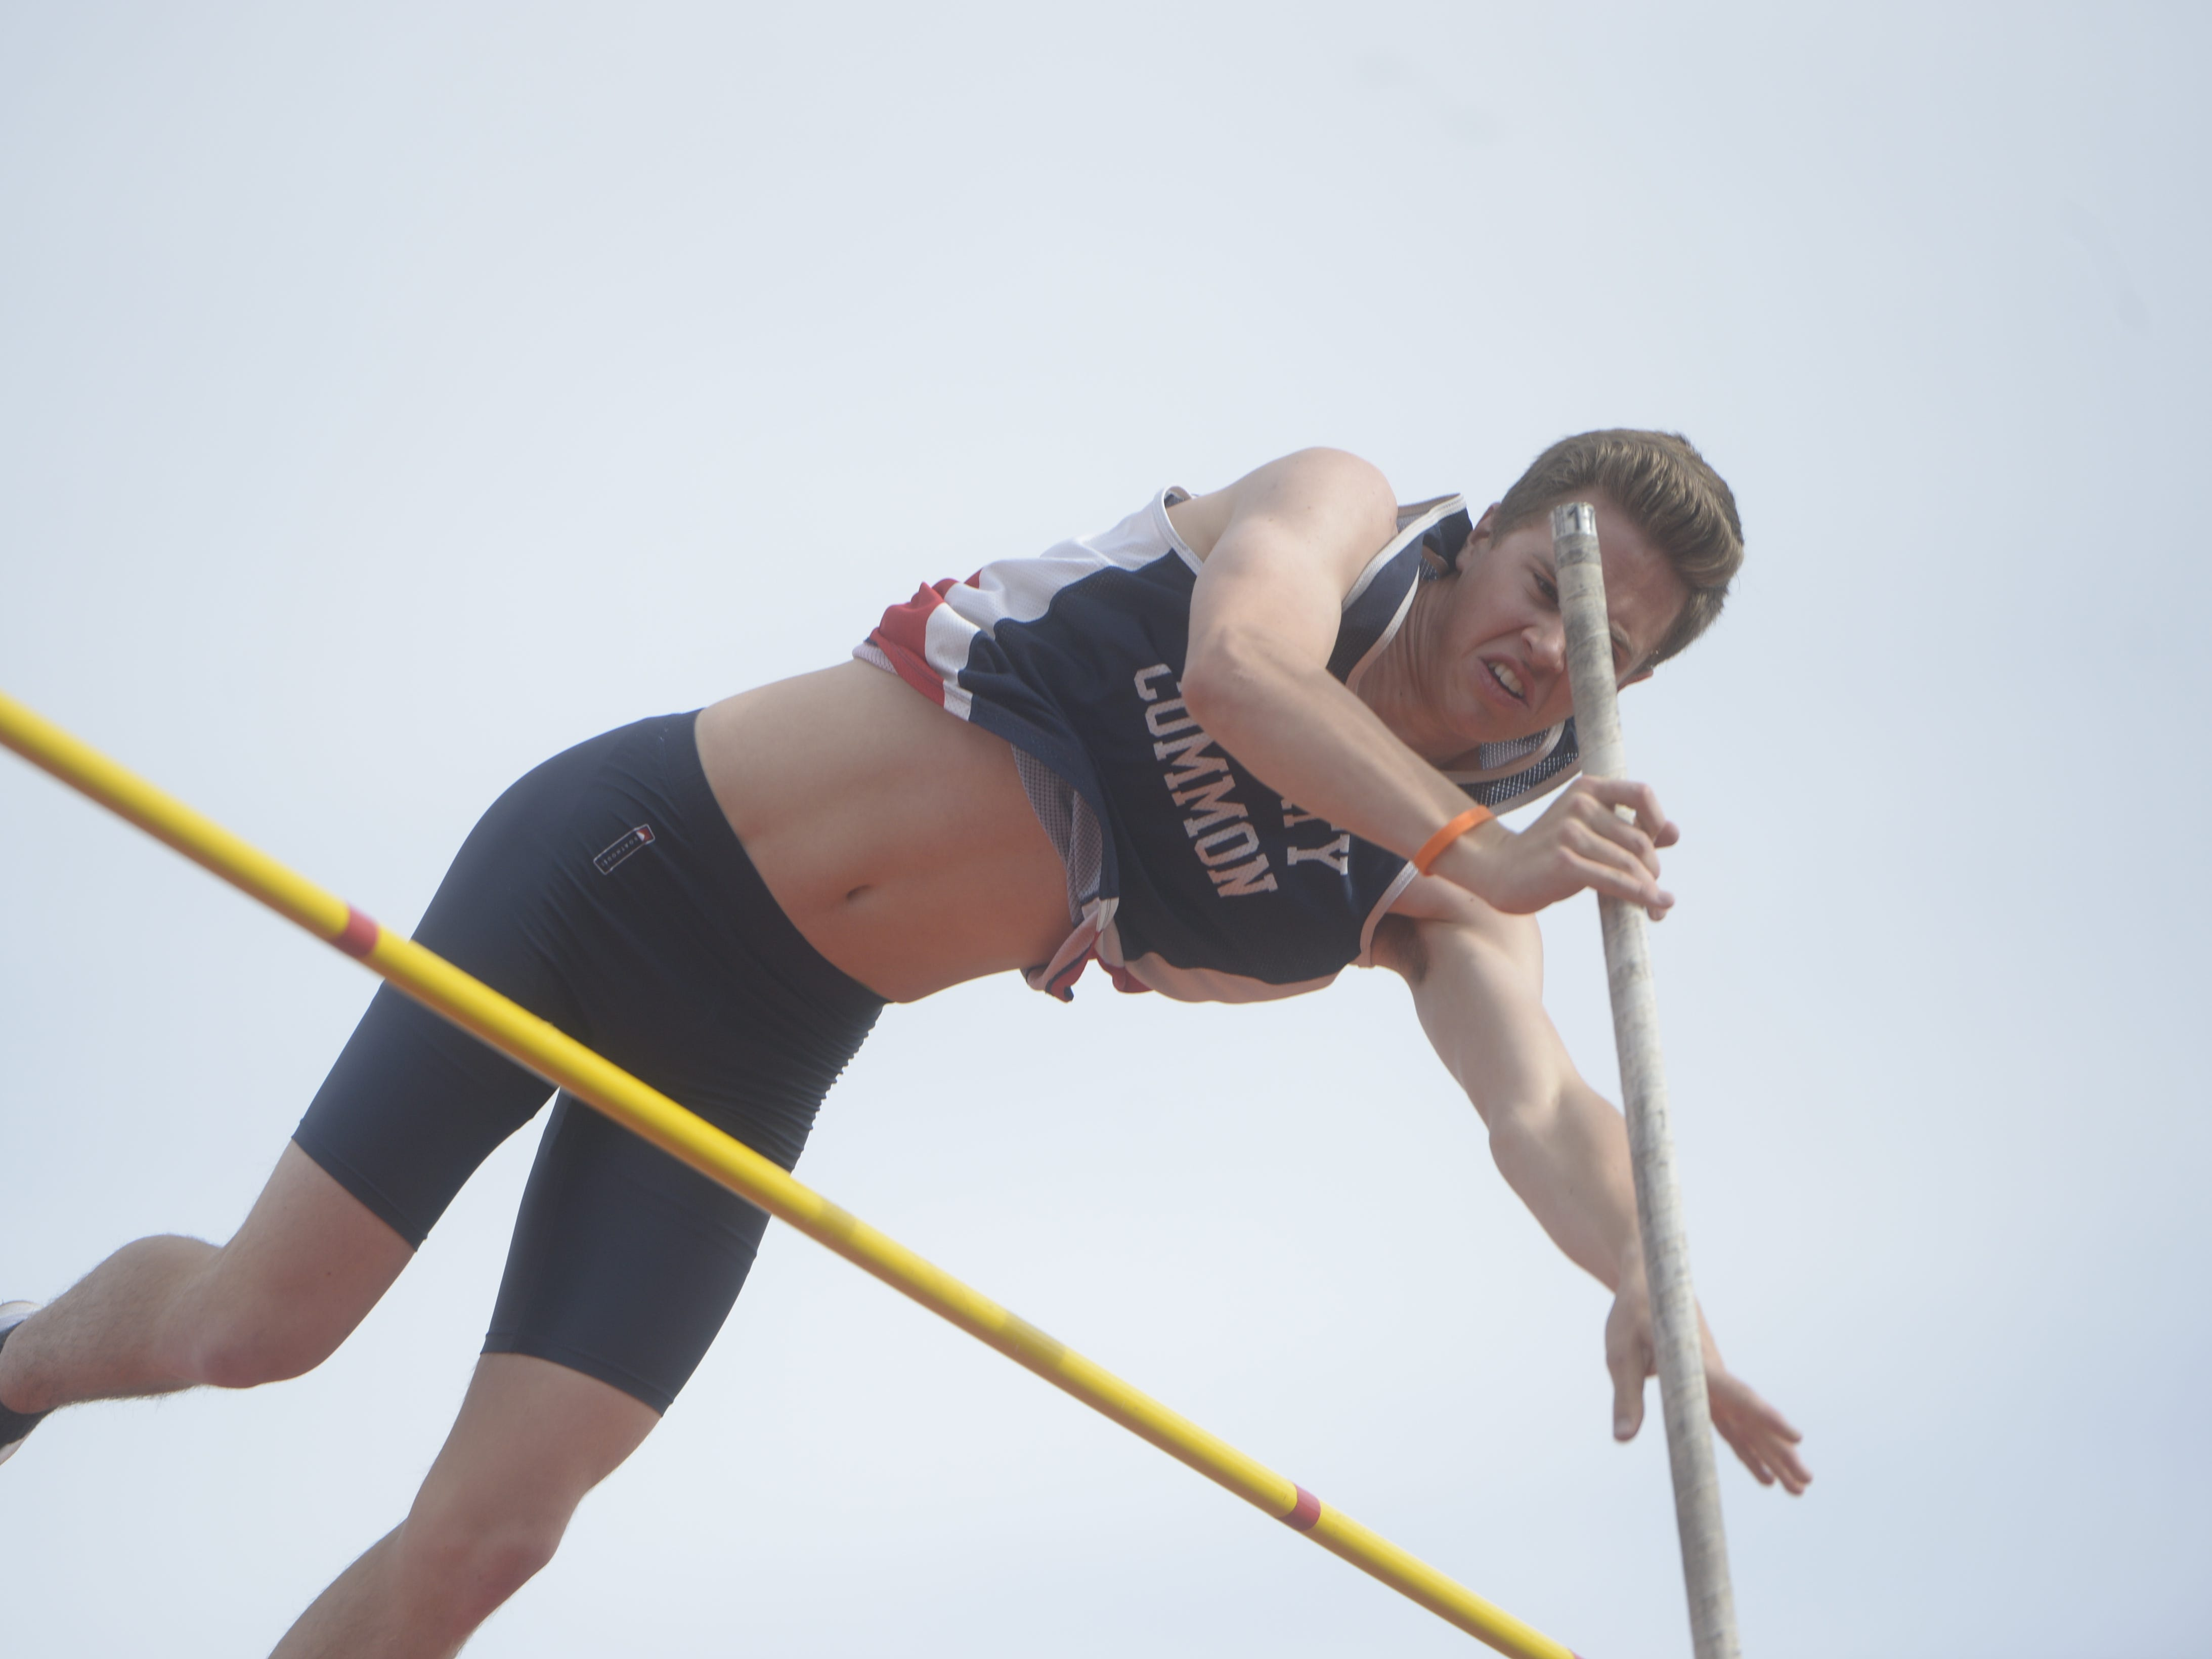 Liberty Common's Spencer Hicklin competes in the pole vault at the Fort Collins city meet at French Field on Tuesday, April 9, 2019.